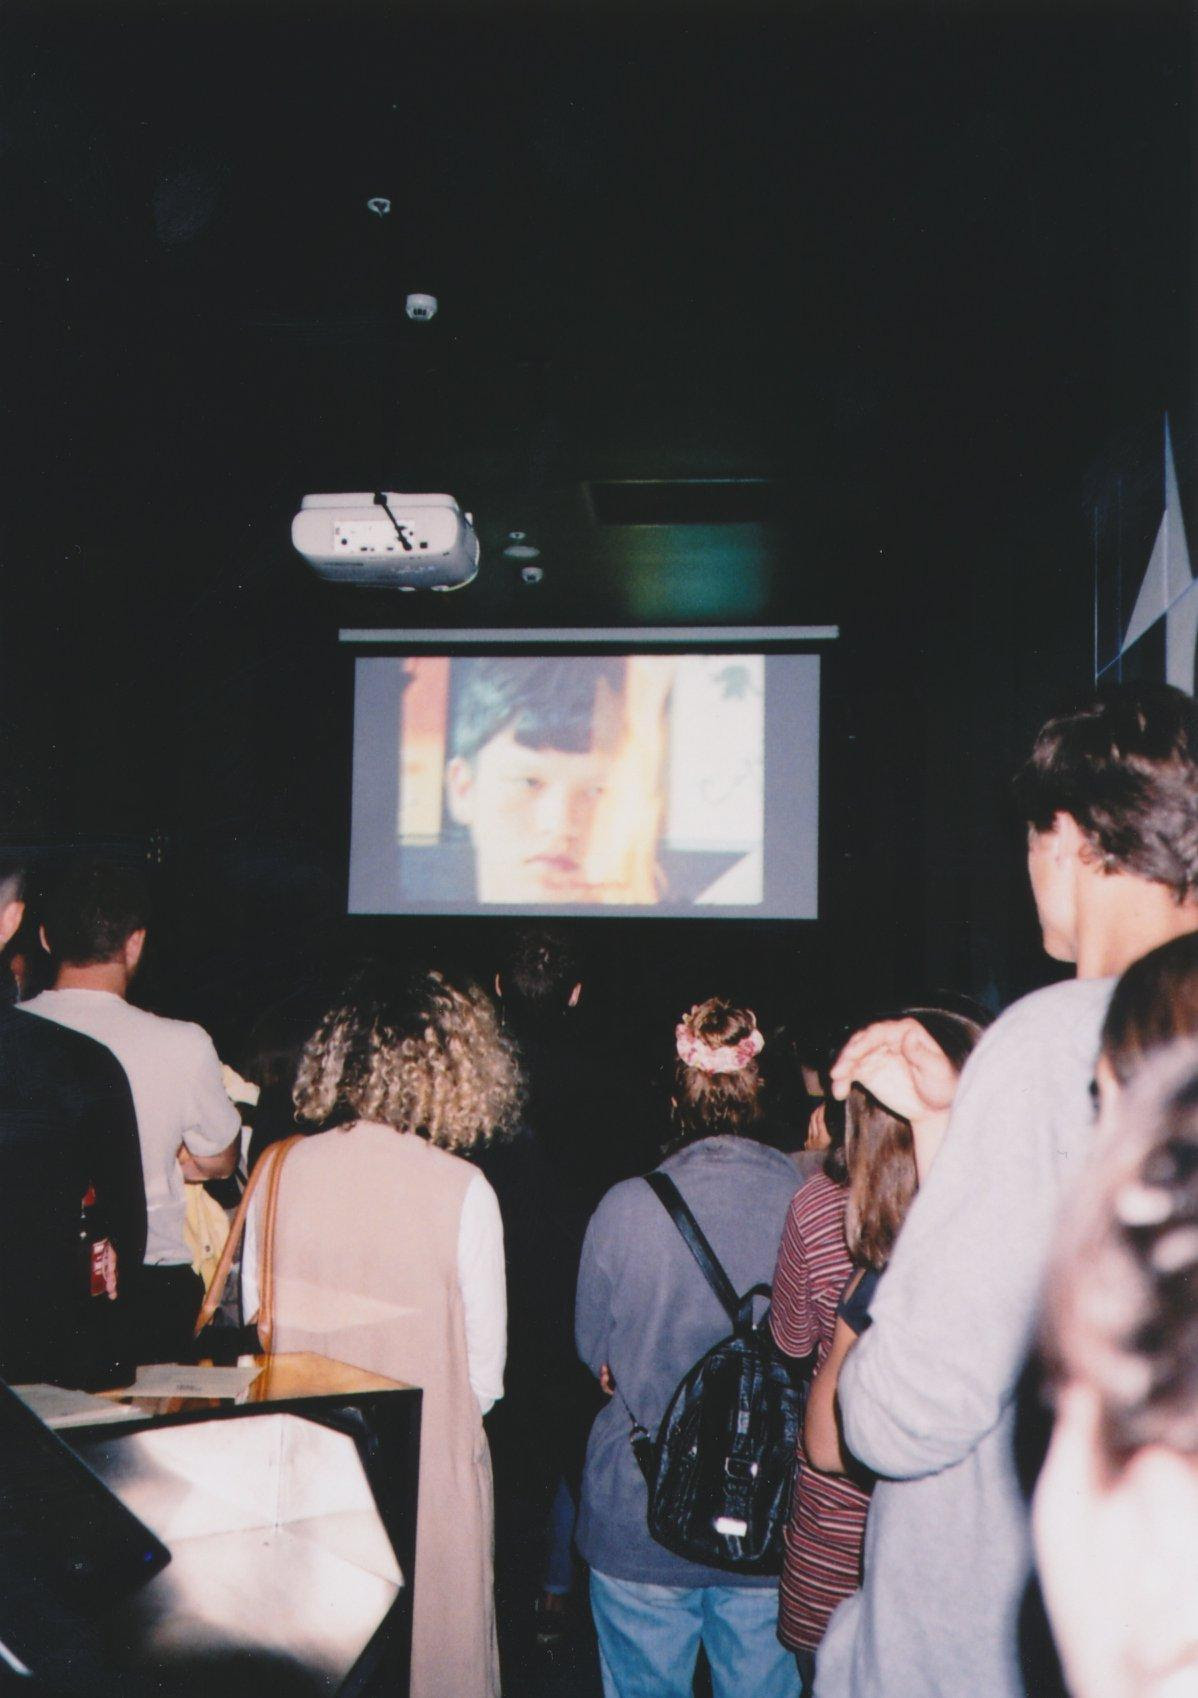 Meals on Reals, a screening of short films at Classic Southside - 16.2.19